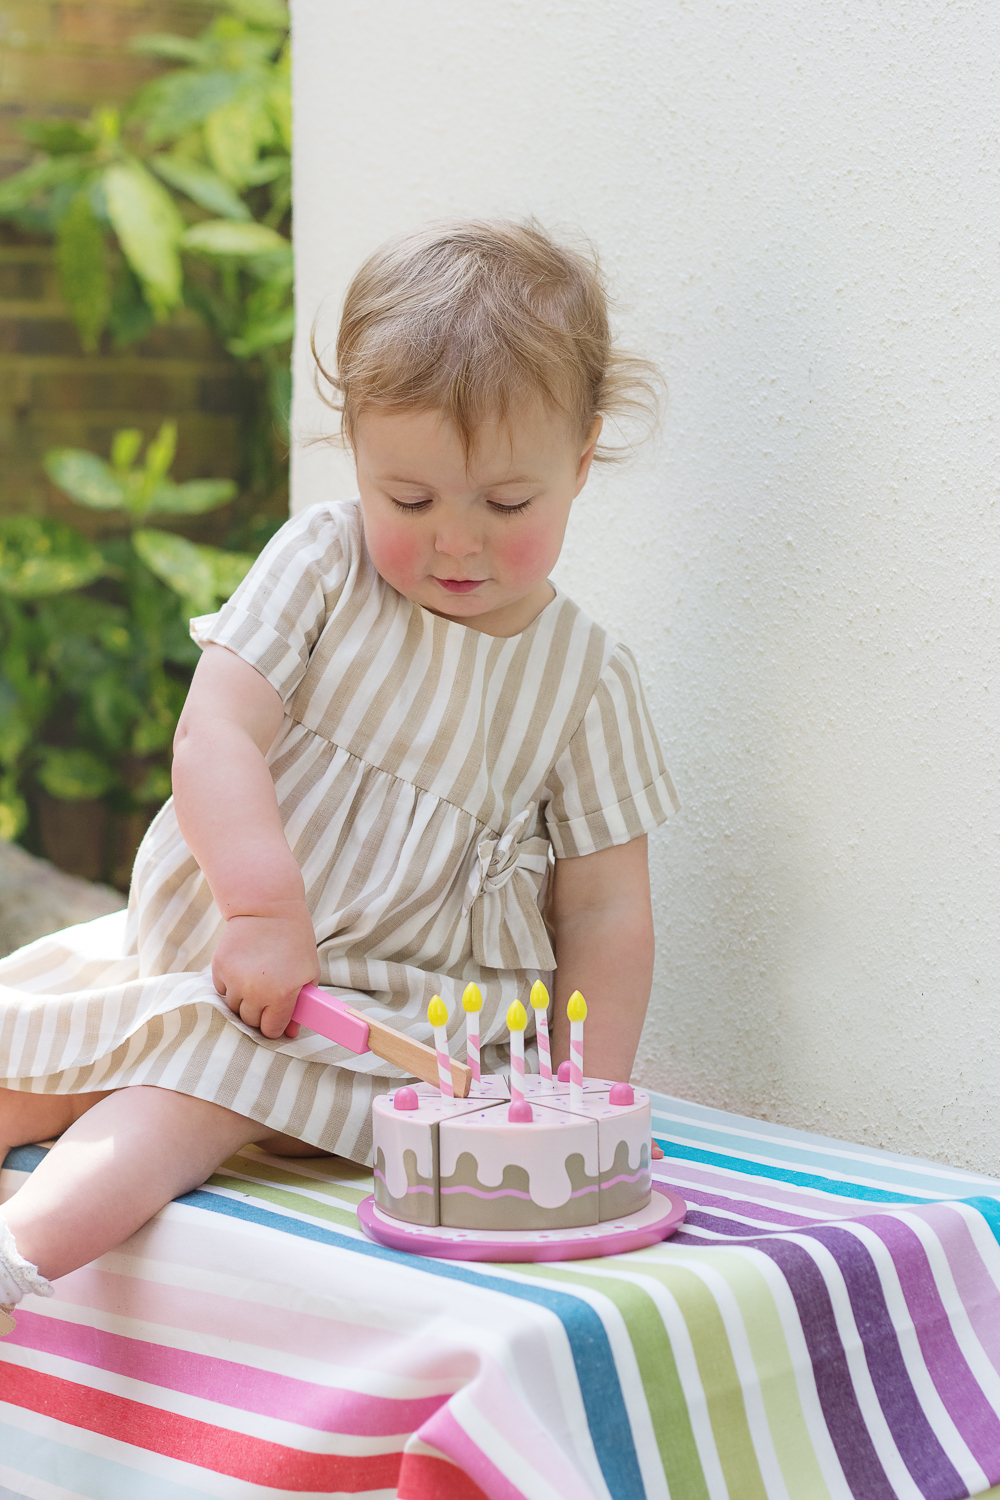 A little girl sits on her own playing with her pretend wooden cake and candles